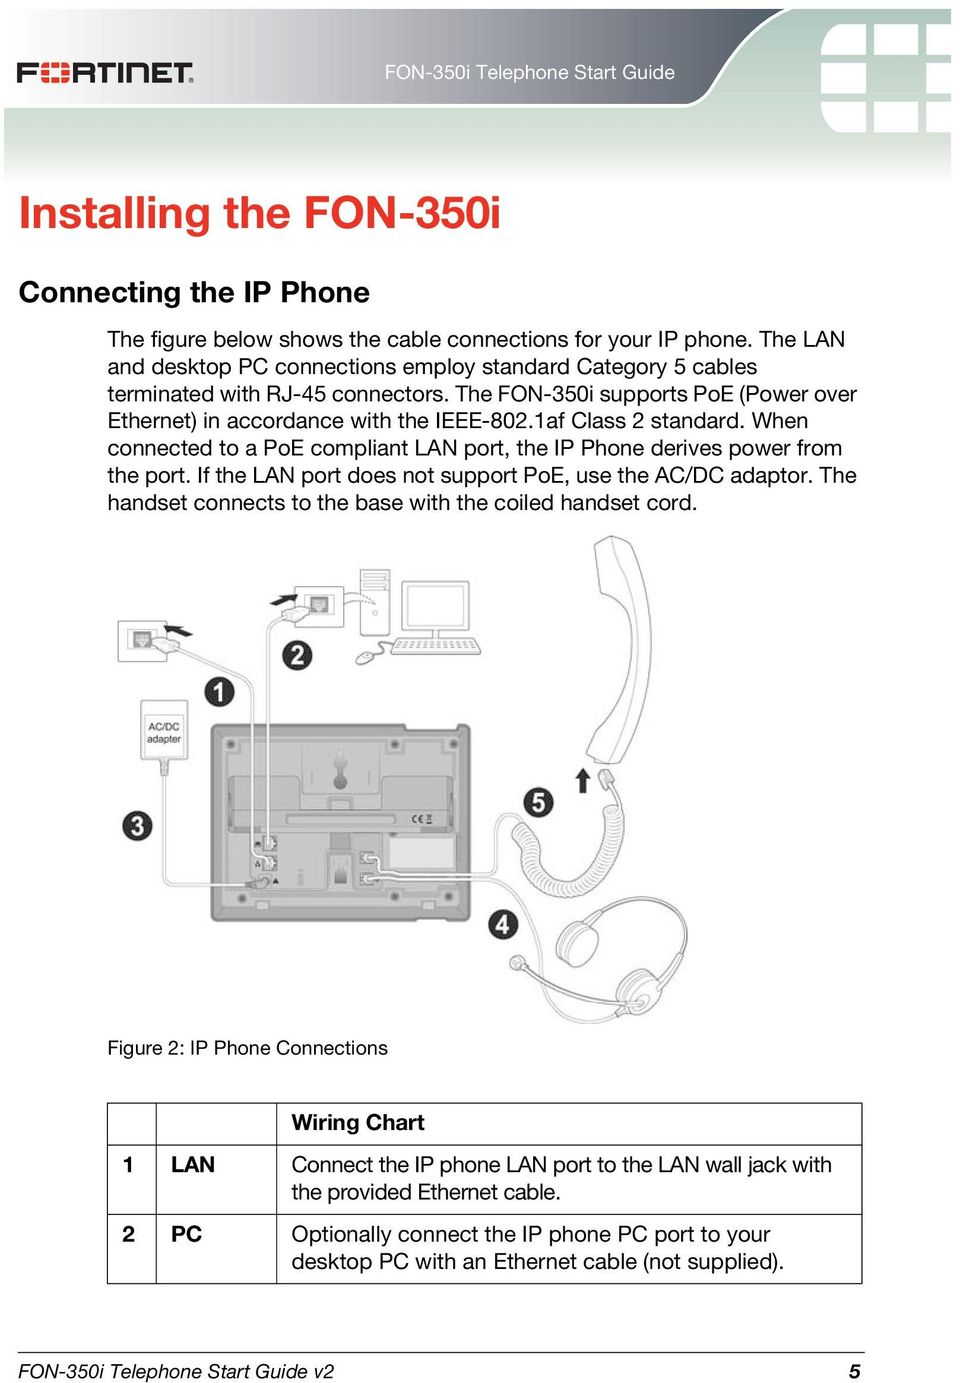 Fon 350i Telephone Start Guide Pdf Ip Pbx Wiring Diagram When Connected To A Poe Compliant Lan Port The